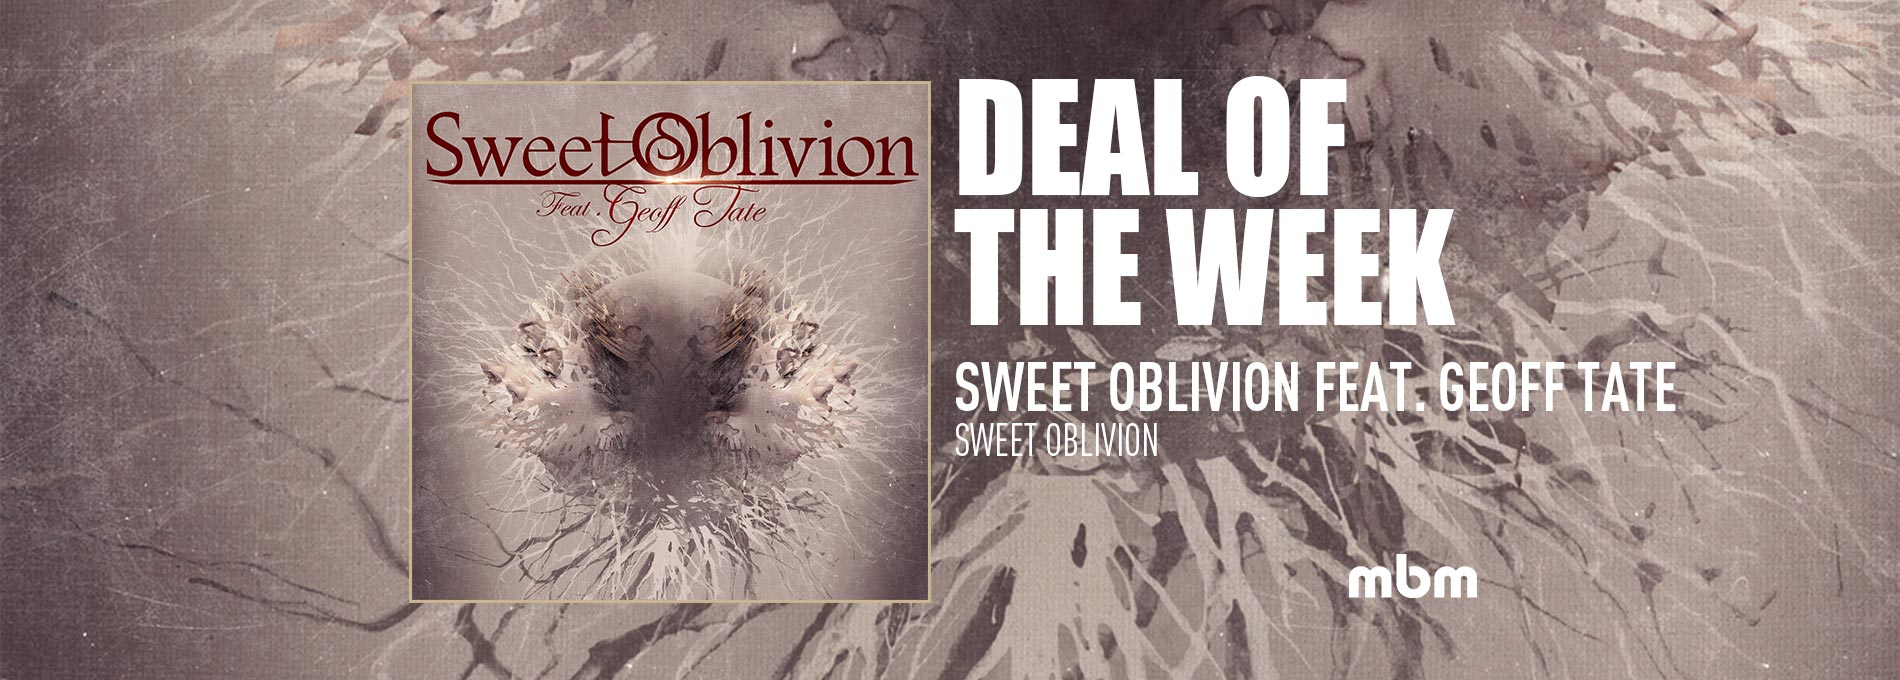 Deal Of The Week: SWEET OBLIVION FEAT. GEOFF TATE - Sweet Oblivion